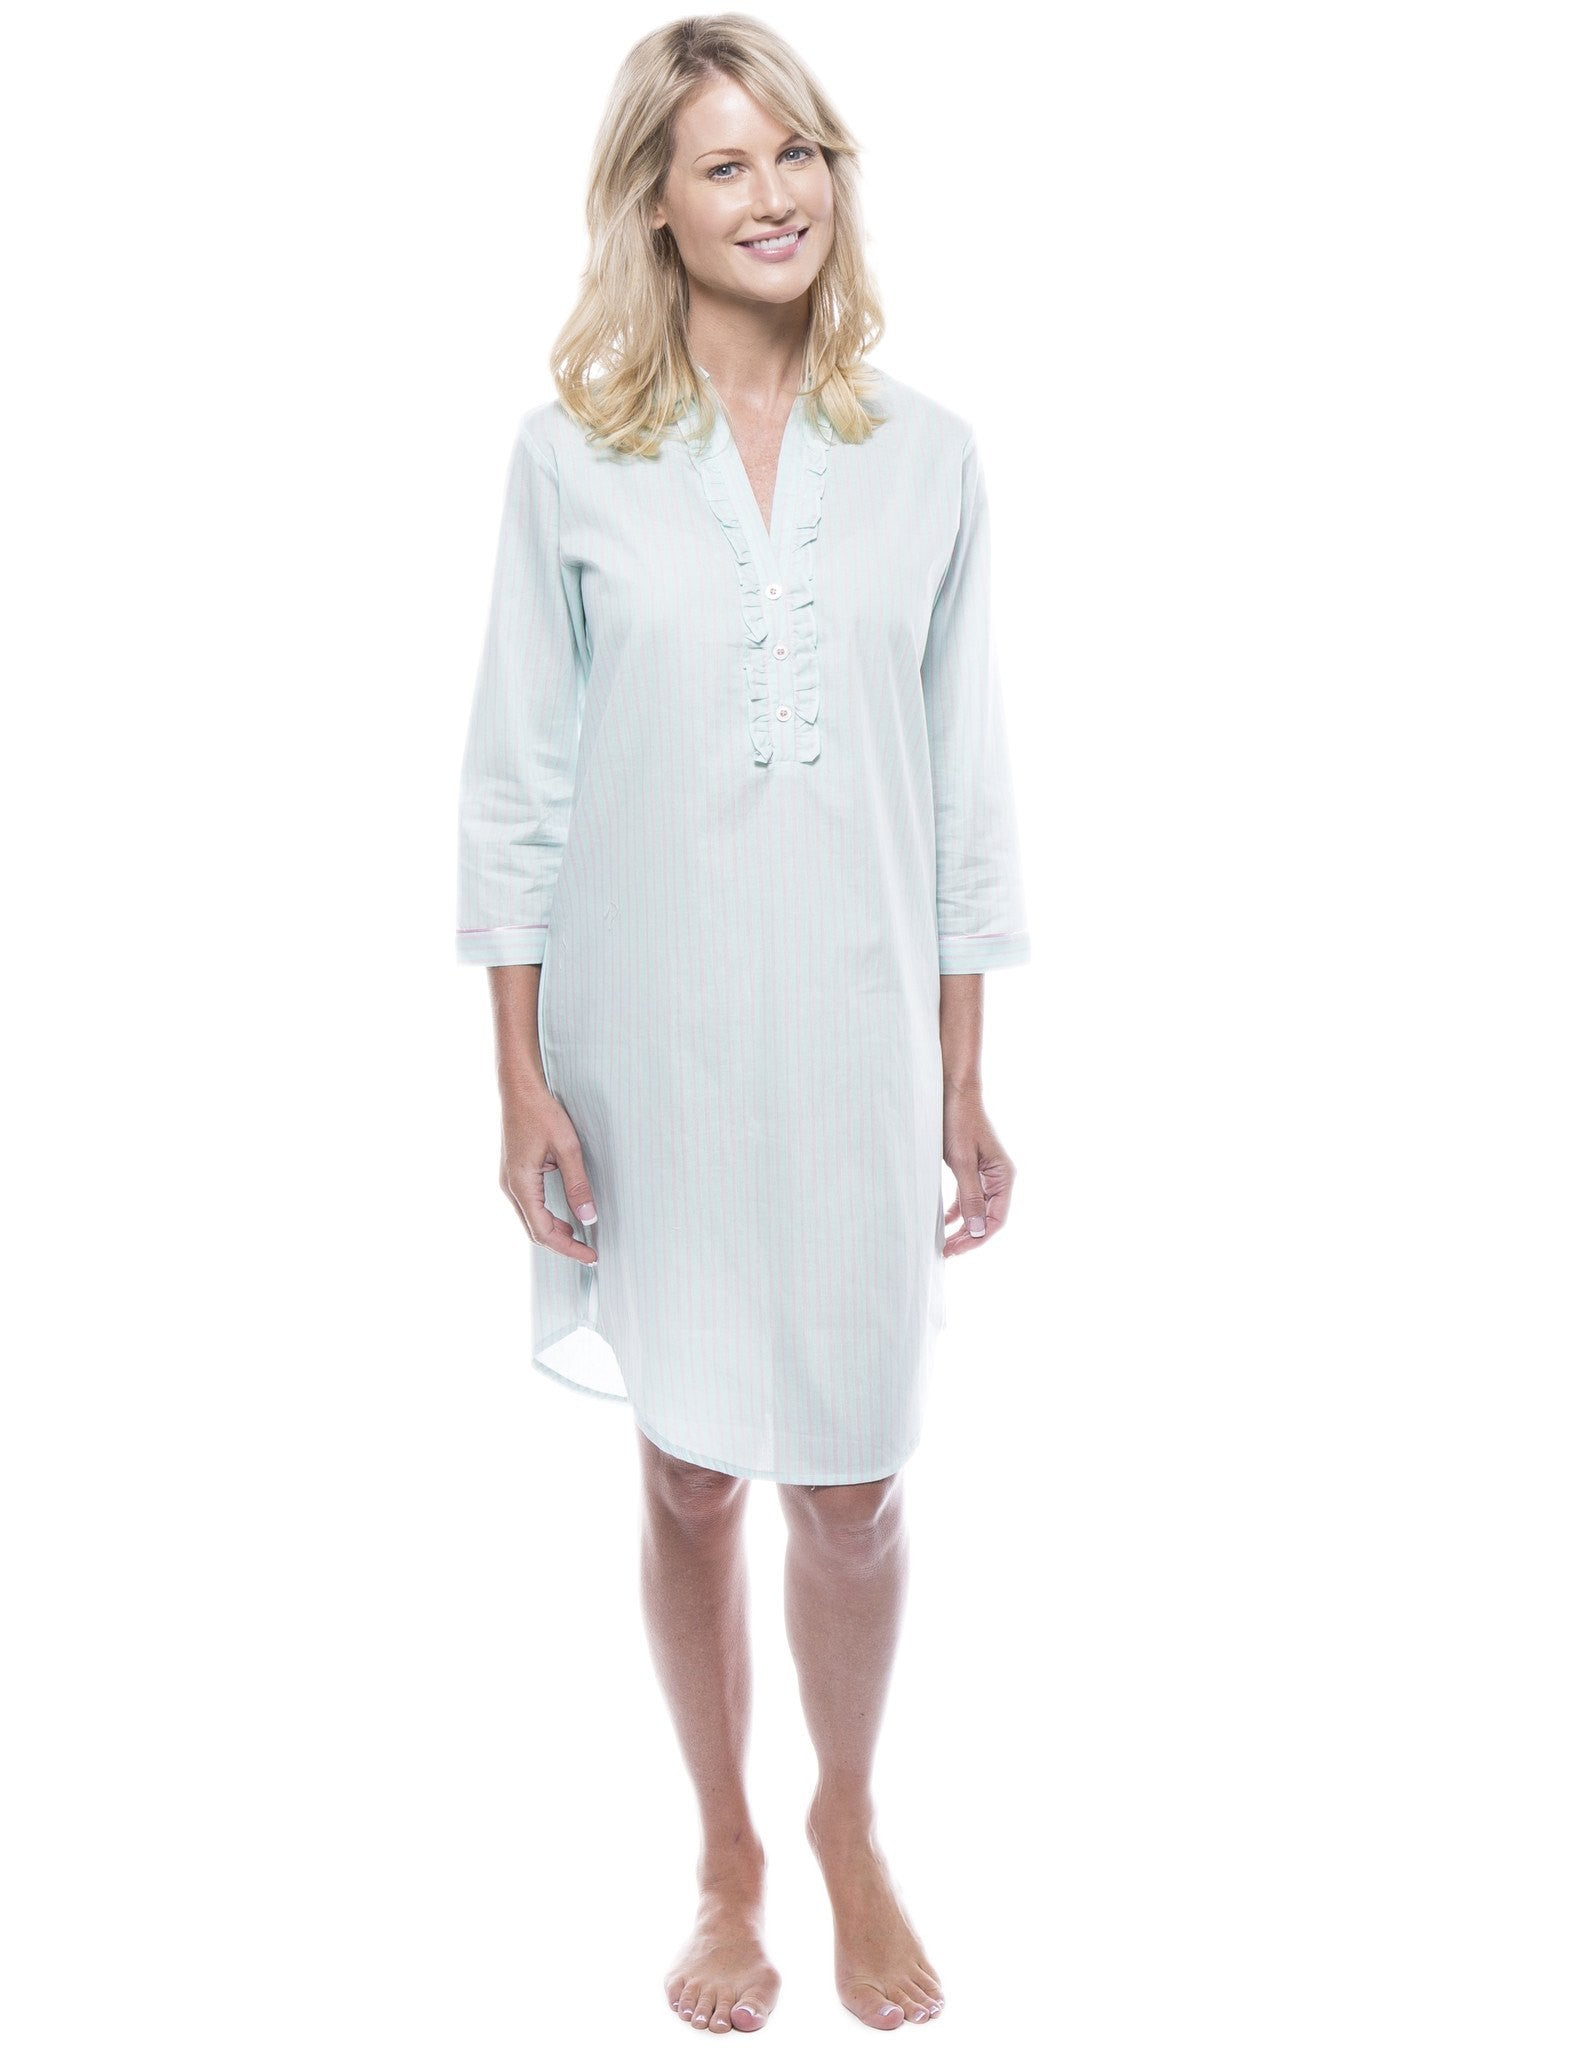 Women's 100% Cotton Poplin Long Sleeve Tunic Sleep Shirt